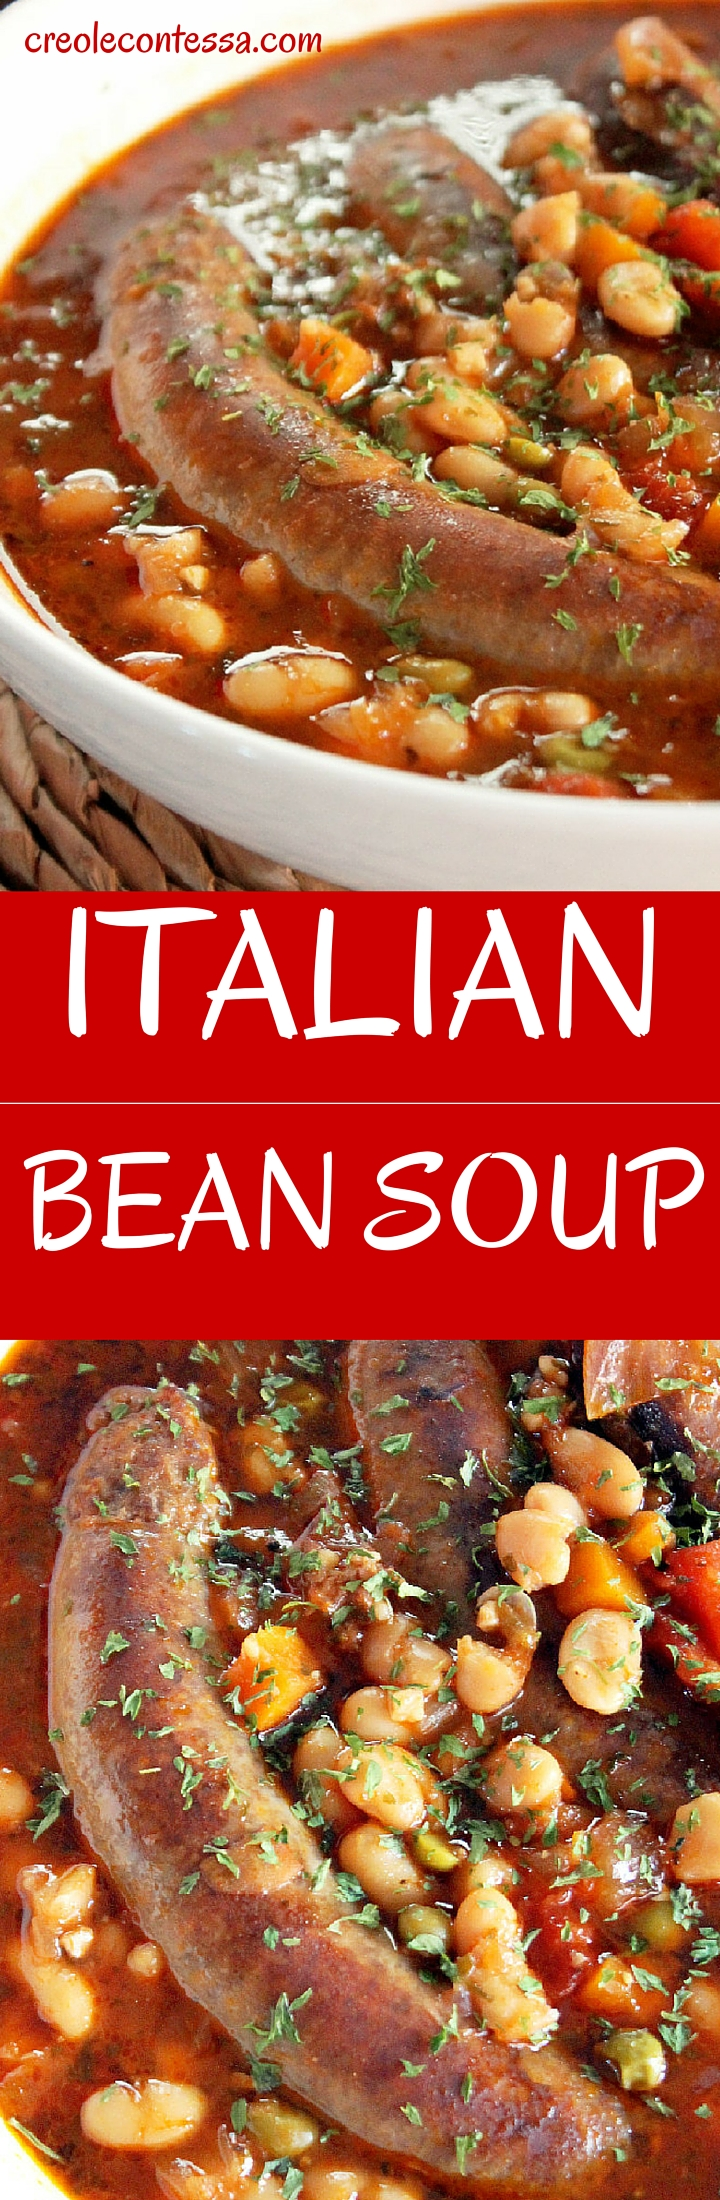 Slow Cooker Italian Bean Soup with Sausage-Creole Contessa